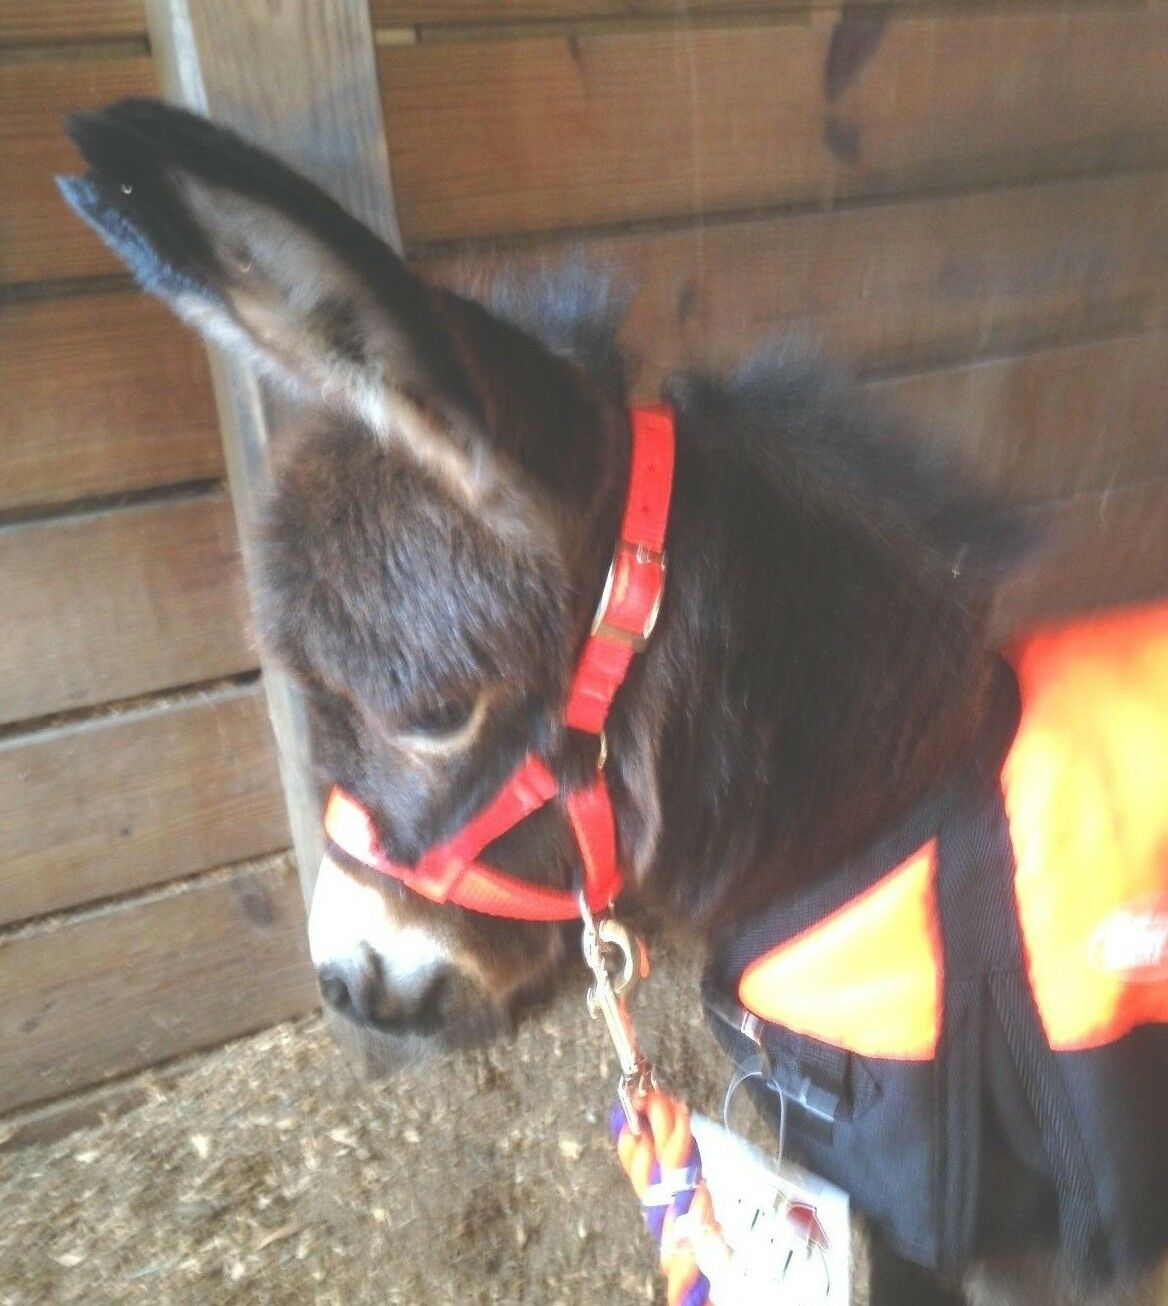 BABY MINIATURE DONKEY or Horse WP BLANKET BLANKET BLANKET + Coordinating Training Halter + Lead b9c6d4